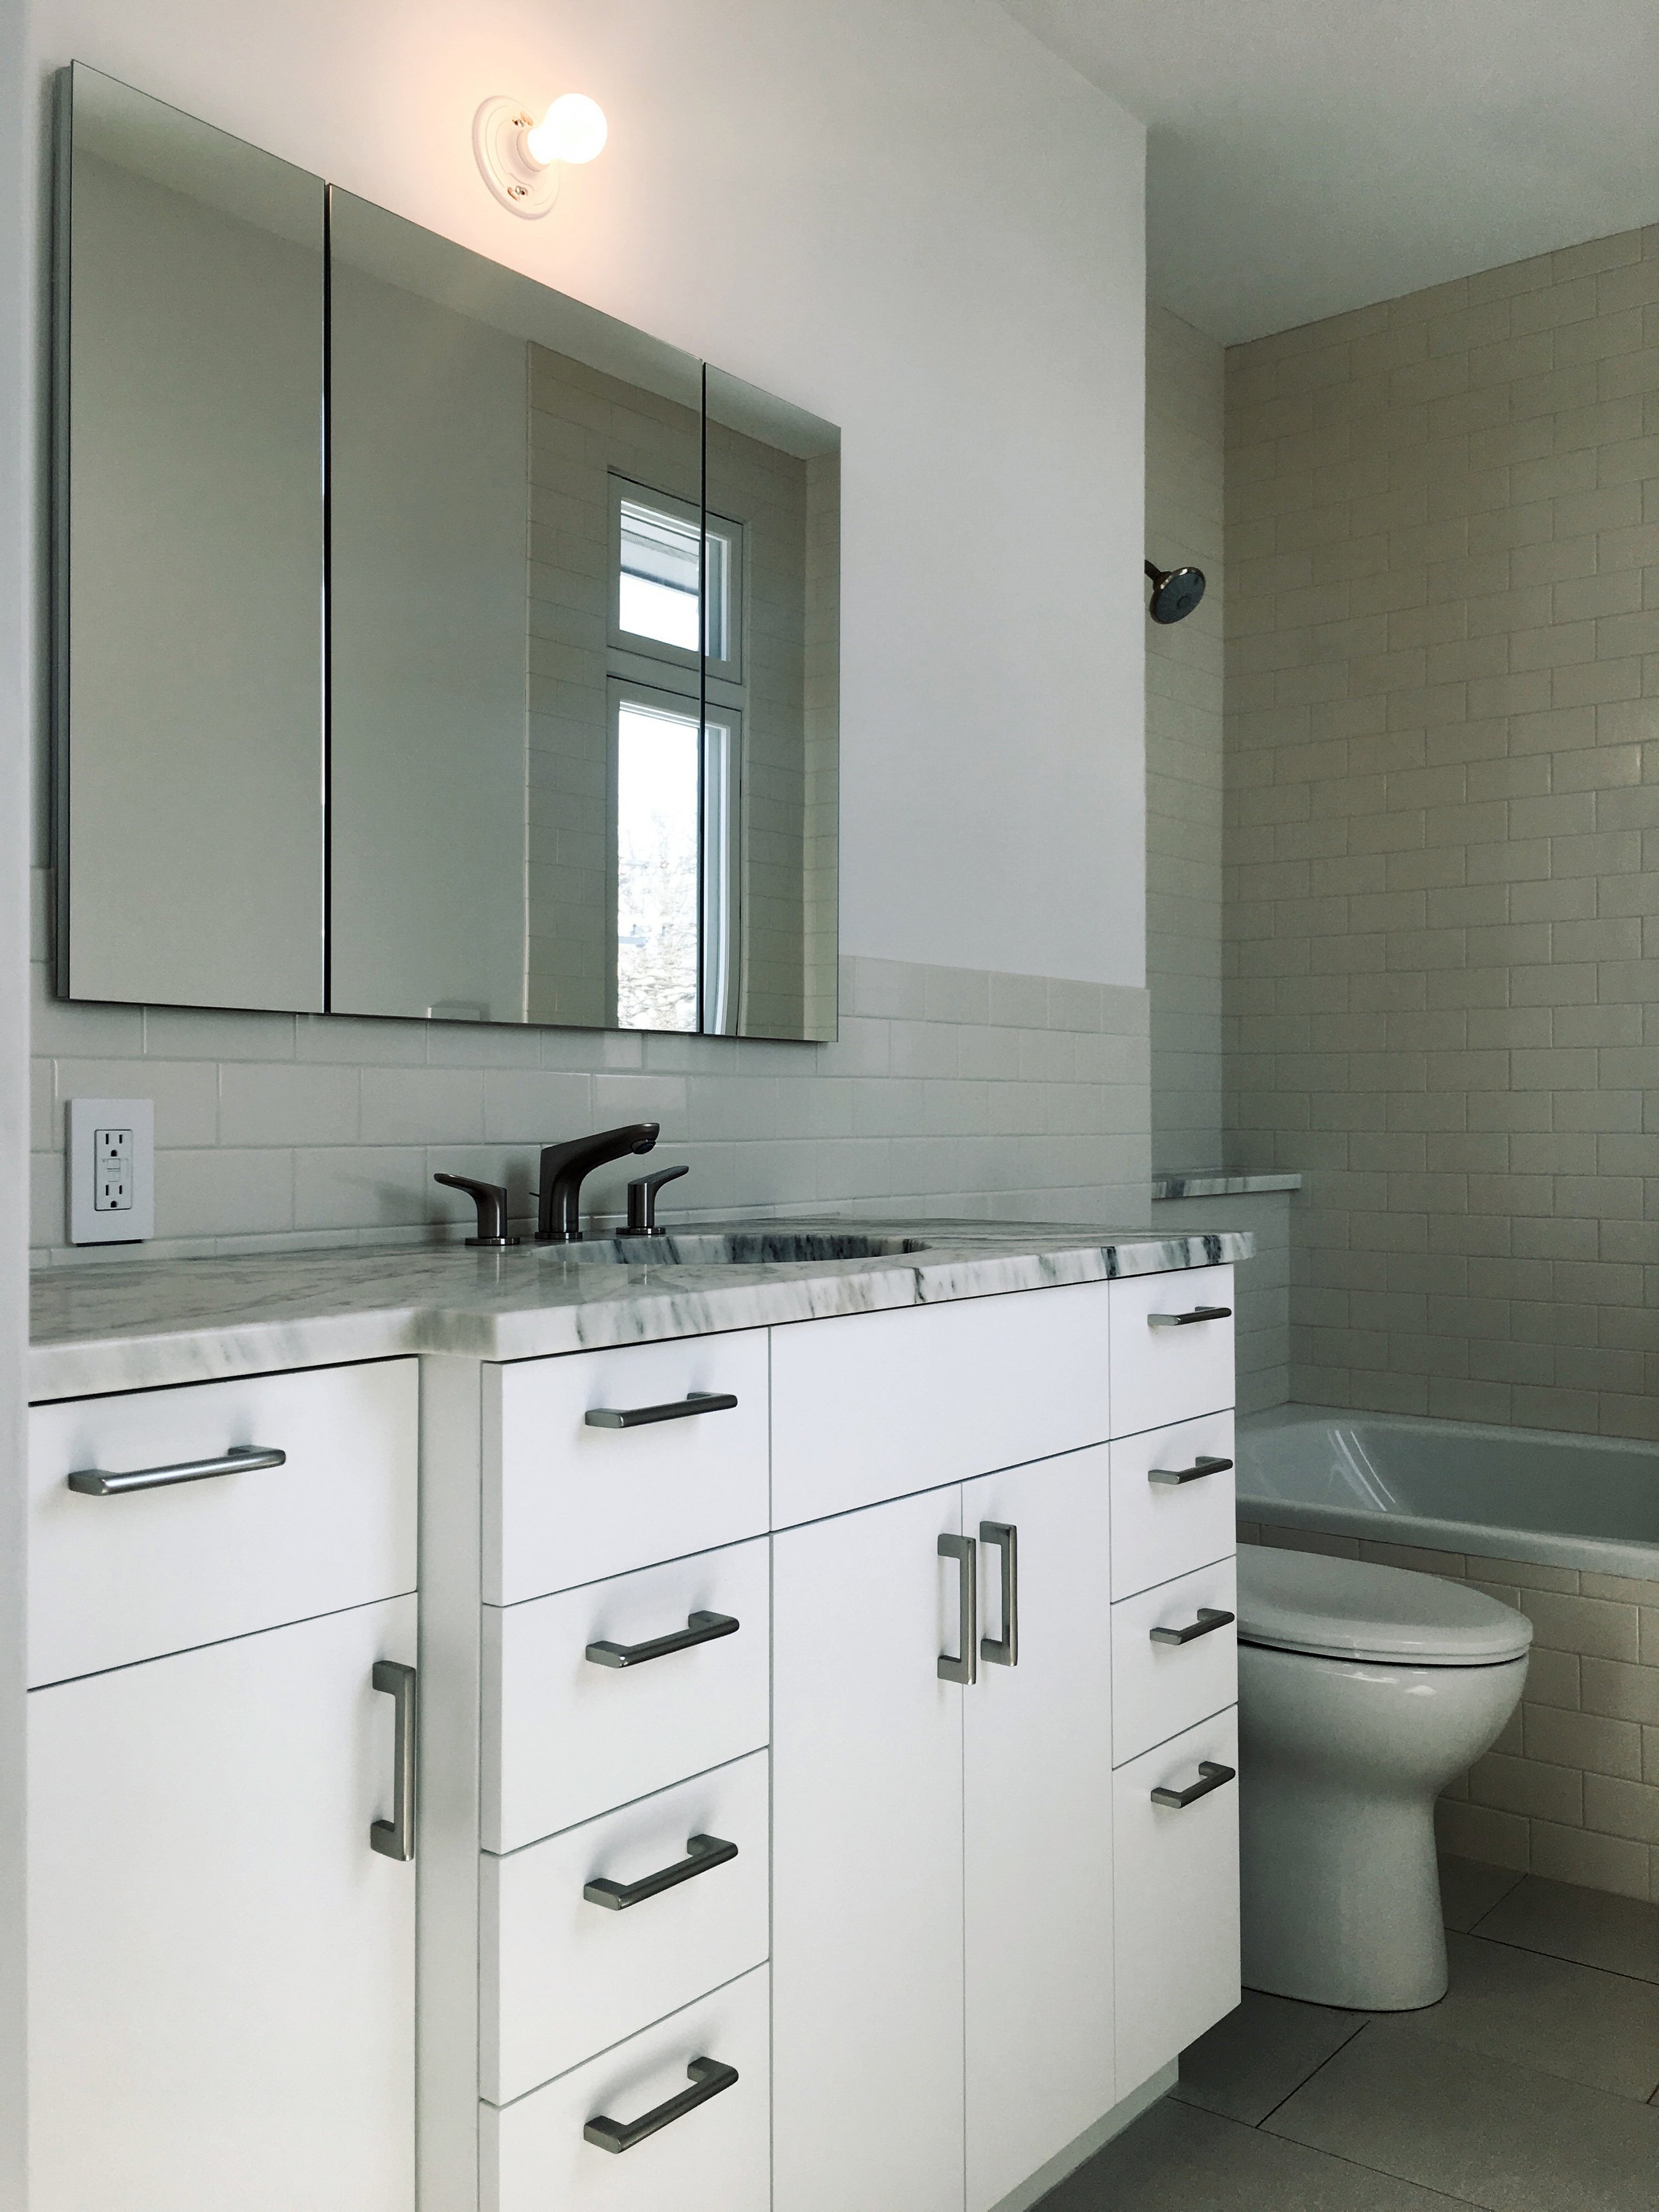 1203 - BATHROOM 2.jpg